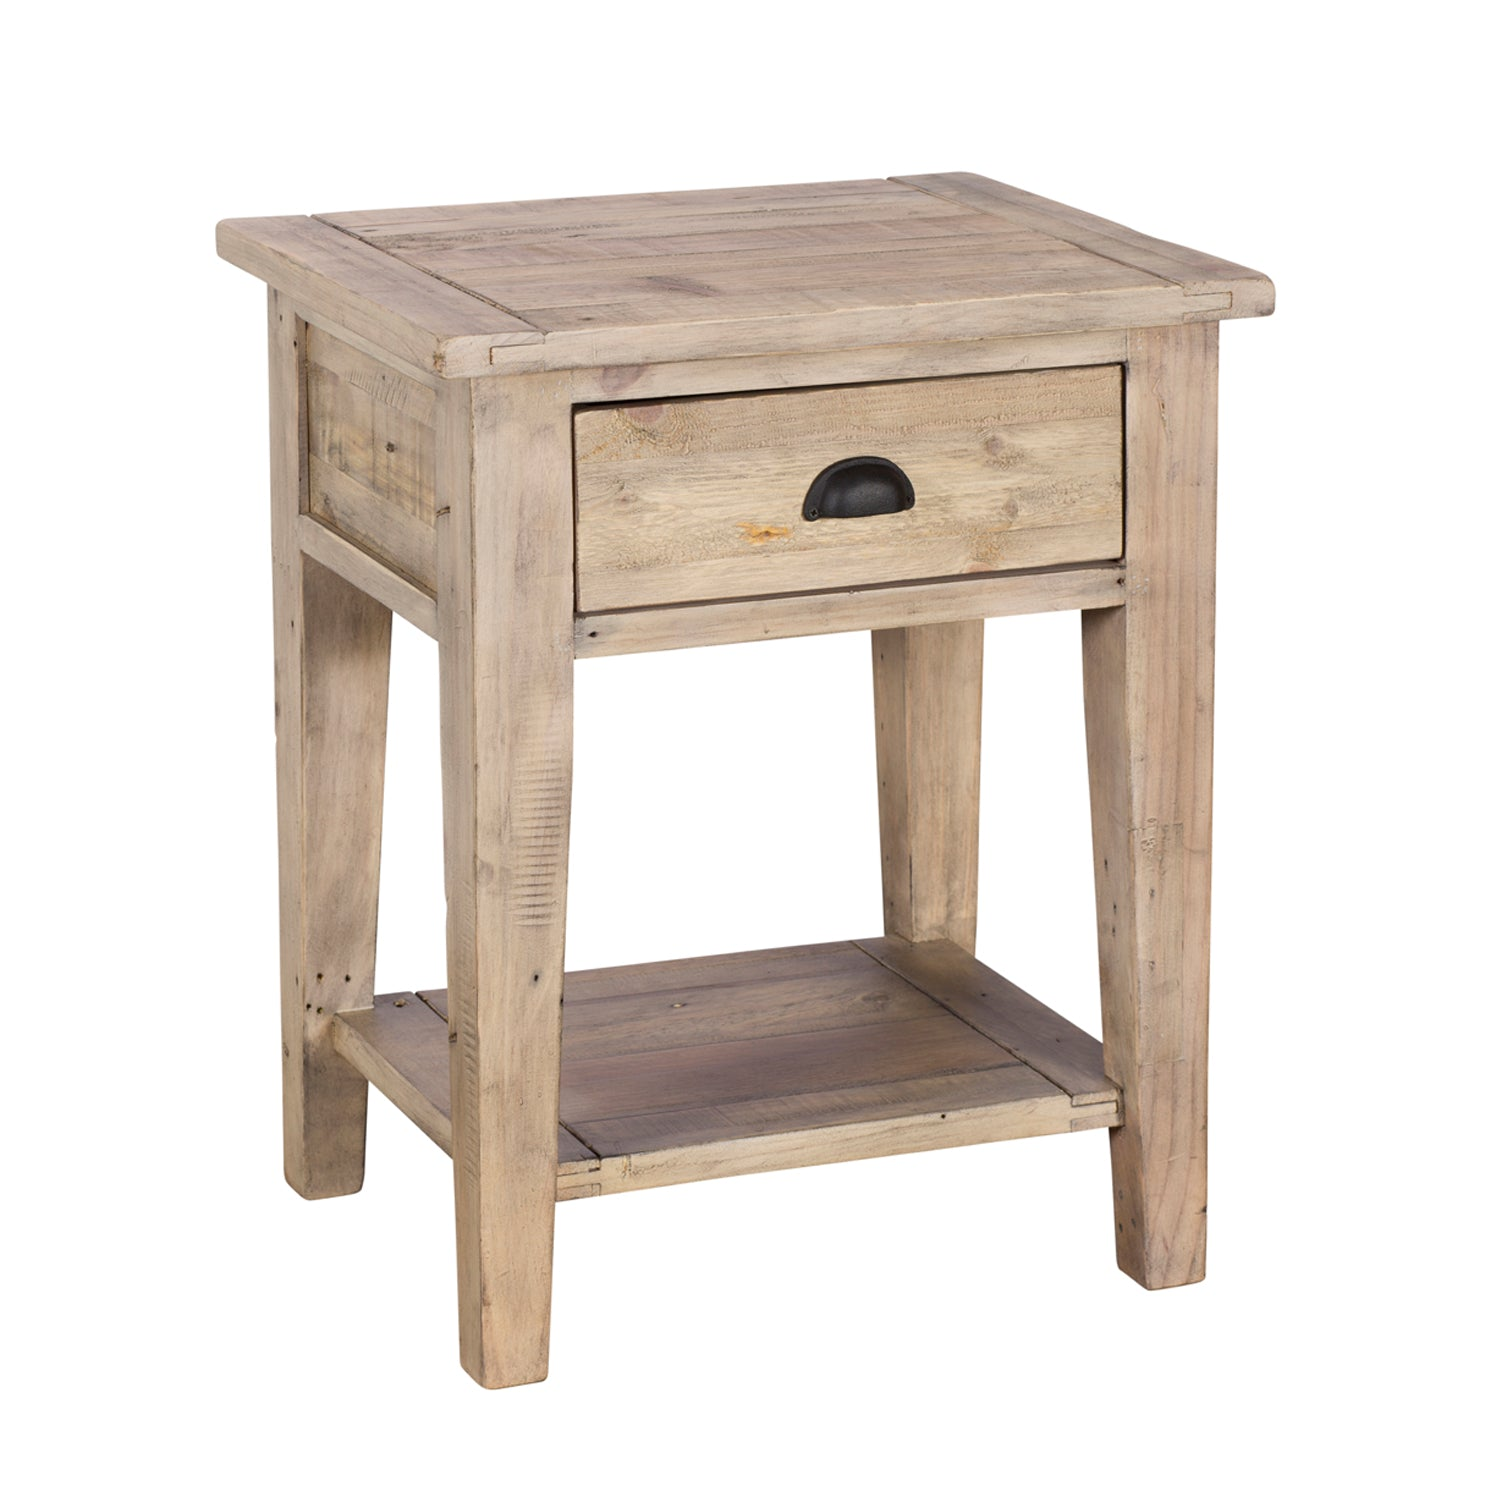 Rustic Reclaimed Timber Lamp Table